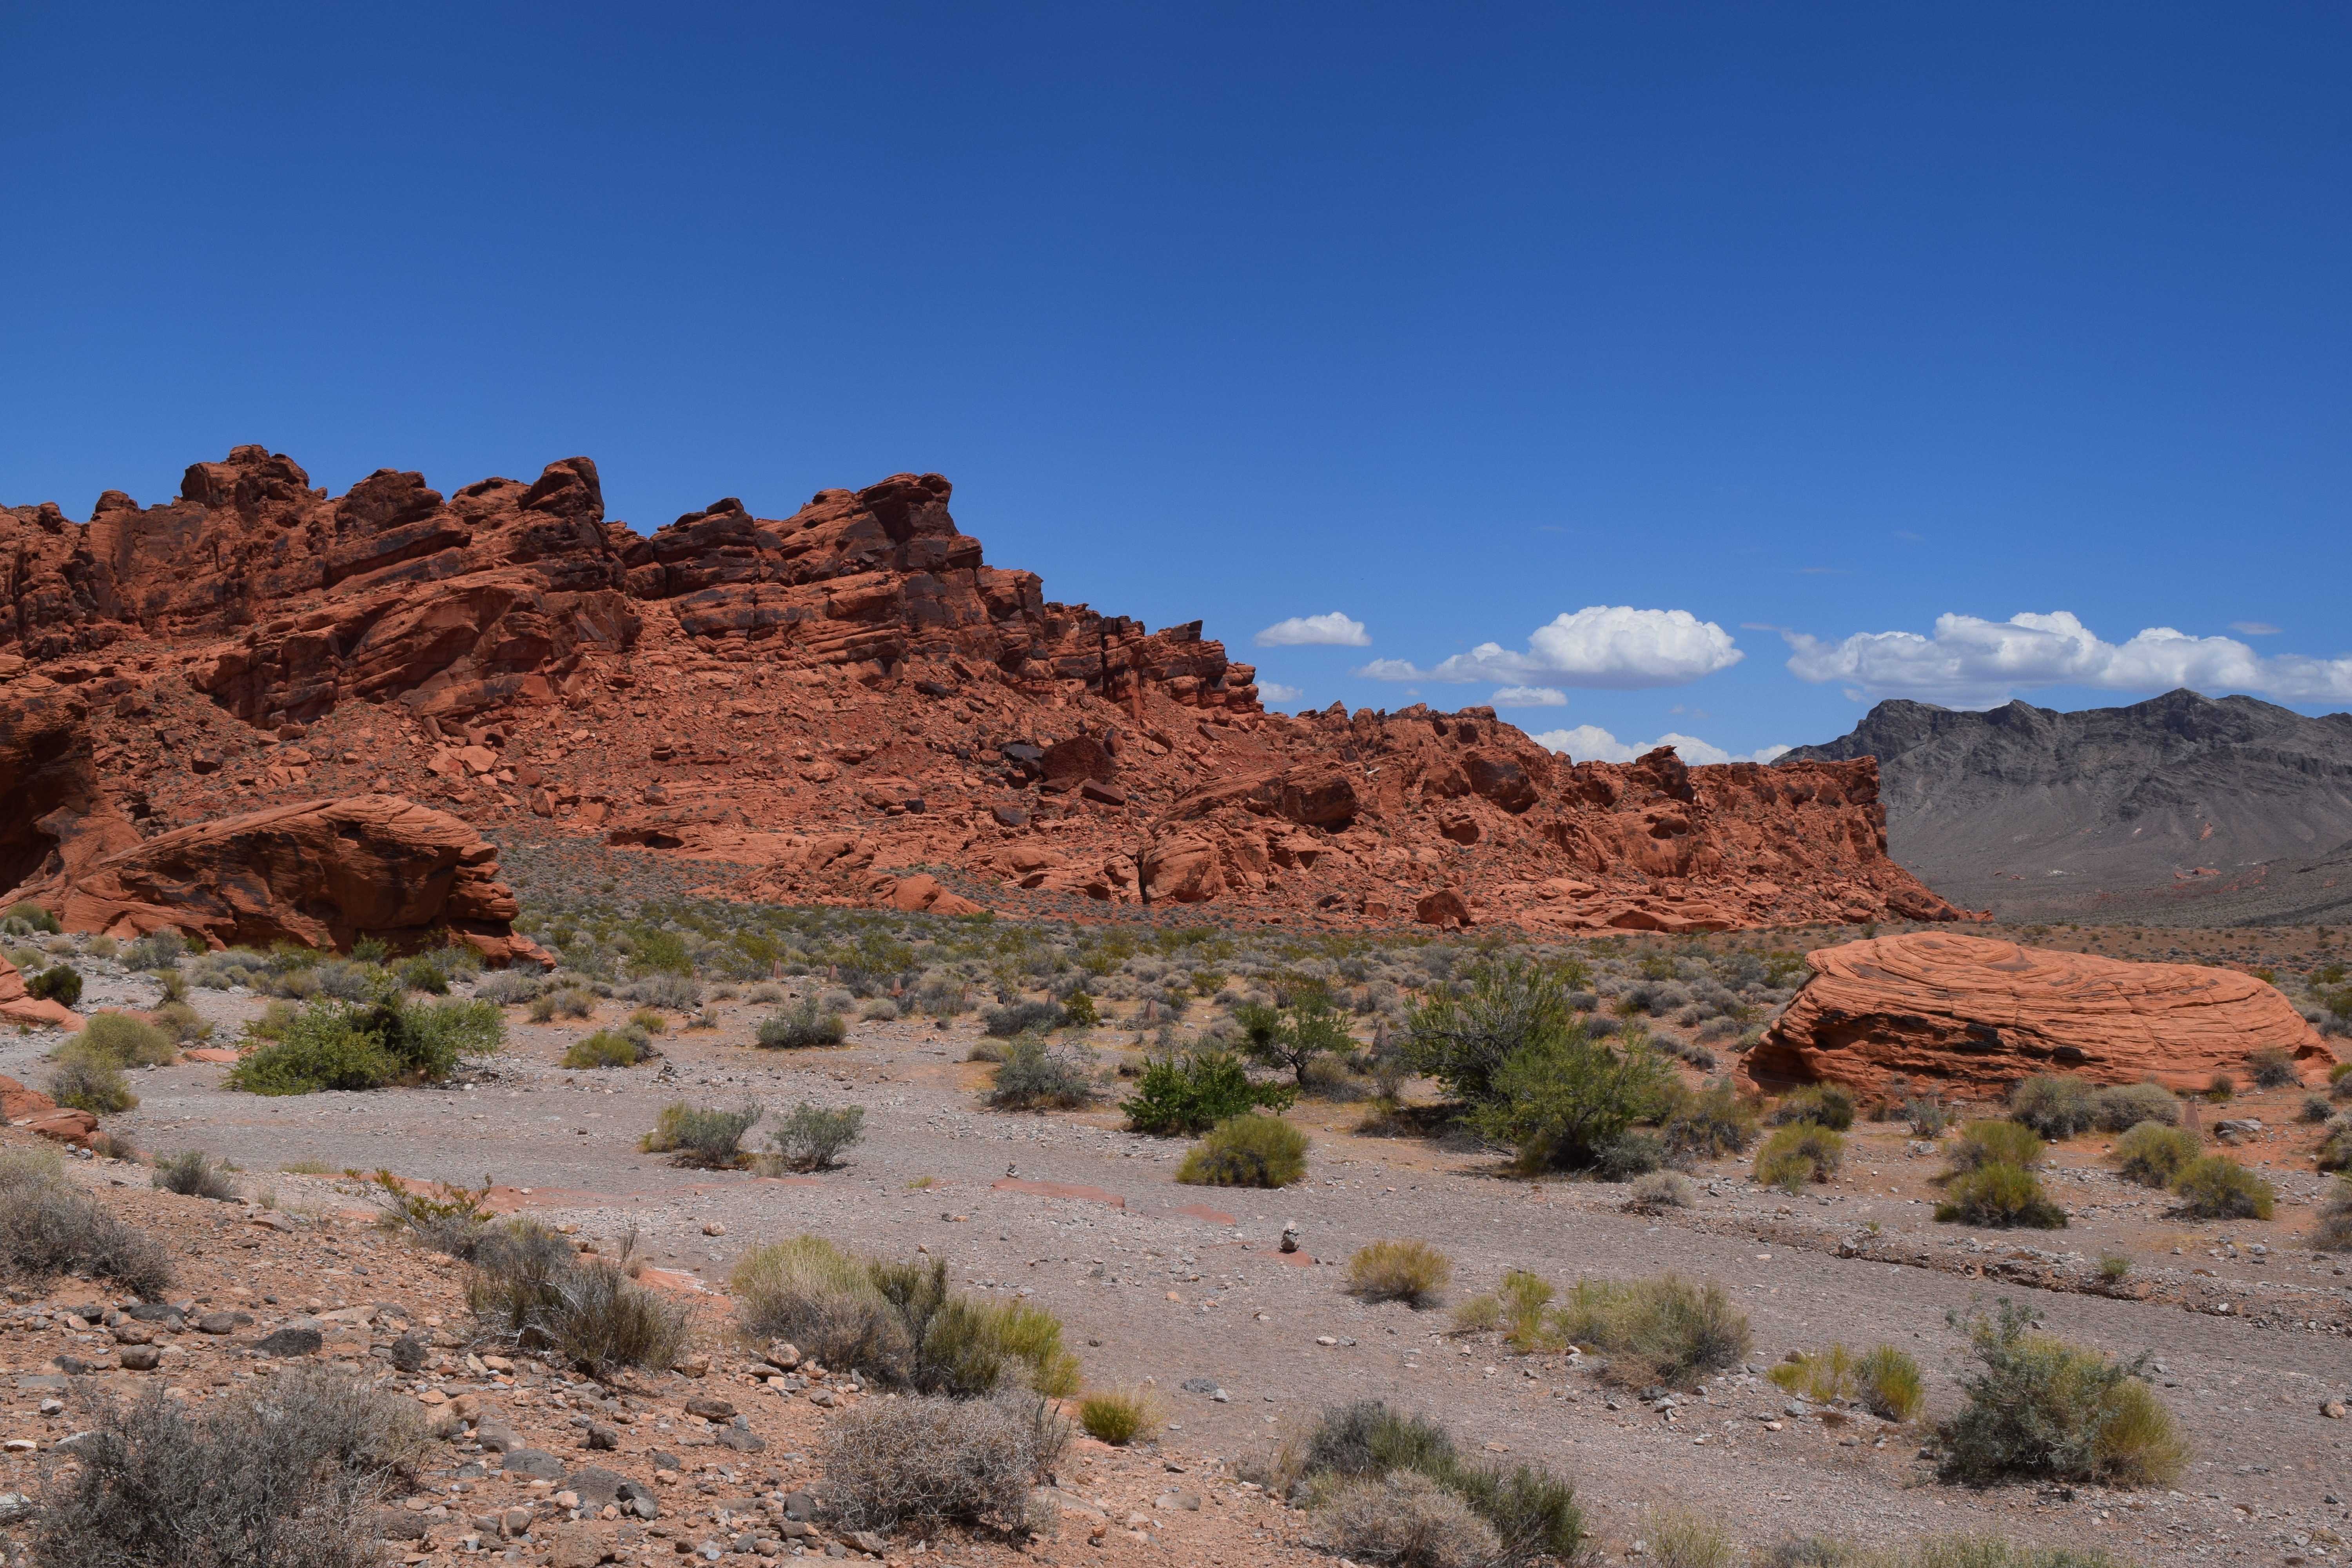 Detour To The Valley Of Fire. Fitlifeandtravel.com